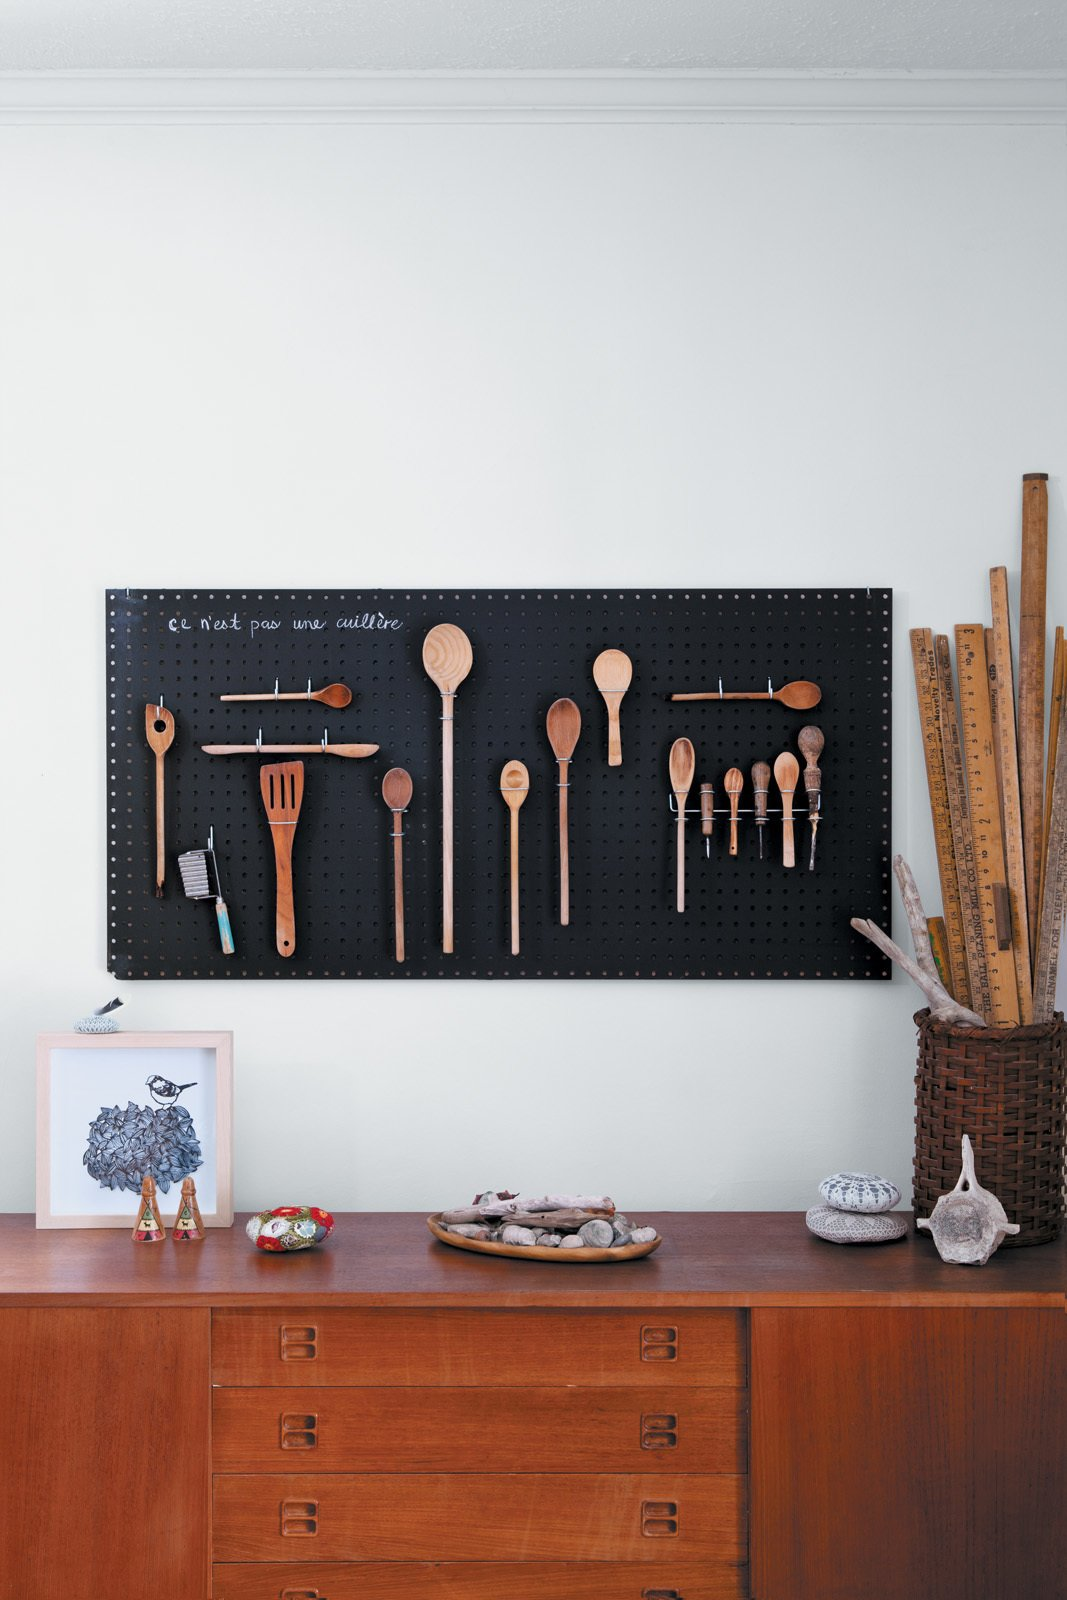 Storage Room and Cabinet Storage Type Margaret Oomen created the perfect pegboard sourcing inspiration—and got a can of chalkboard paint—from the aisles of Home Depot.  Chalkboard Walls in Kitchens and Kids' Rooms by Jaime Gillin from DIY Black Chalkboard Pegboard by Margaret Oomen